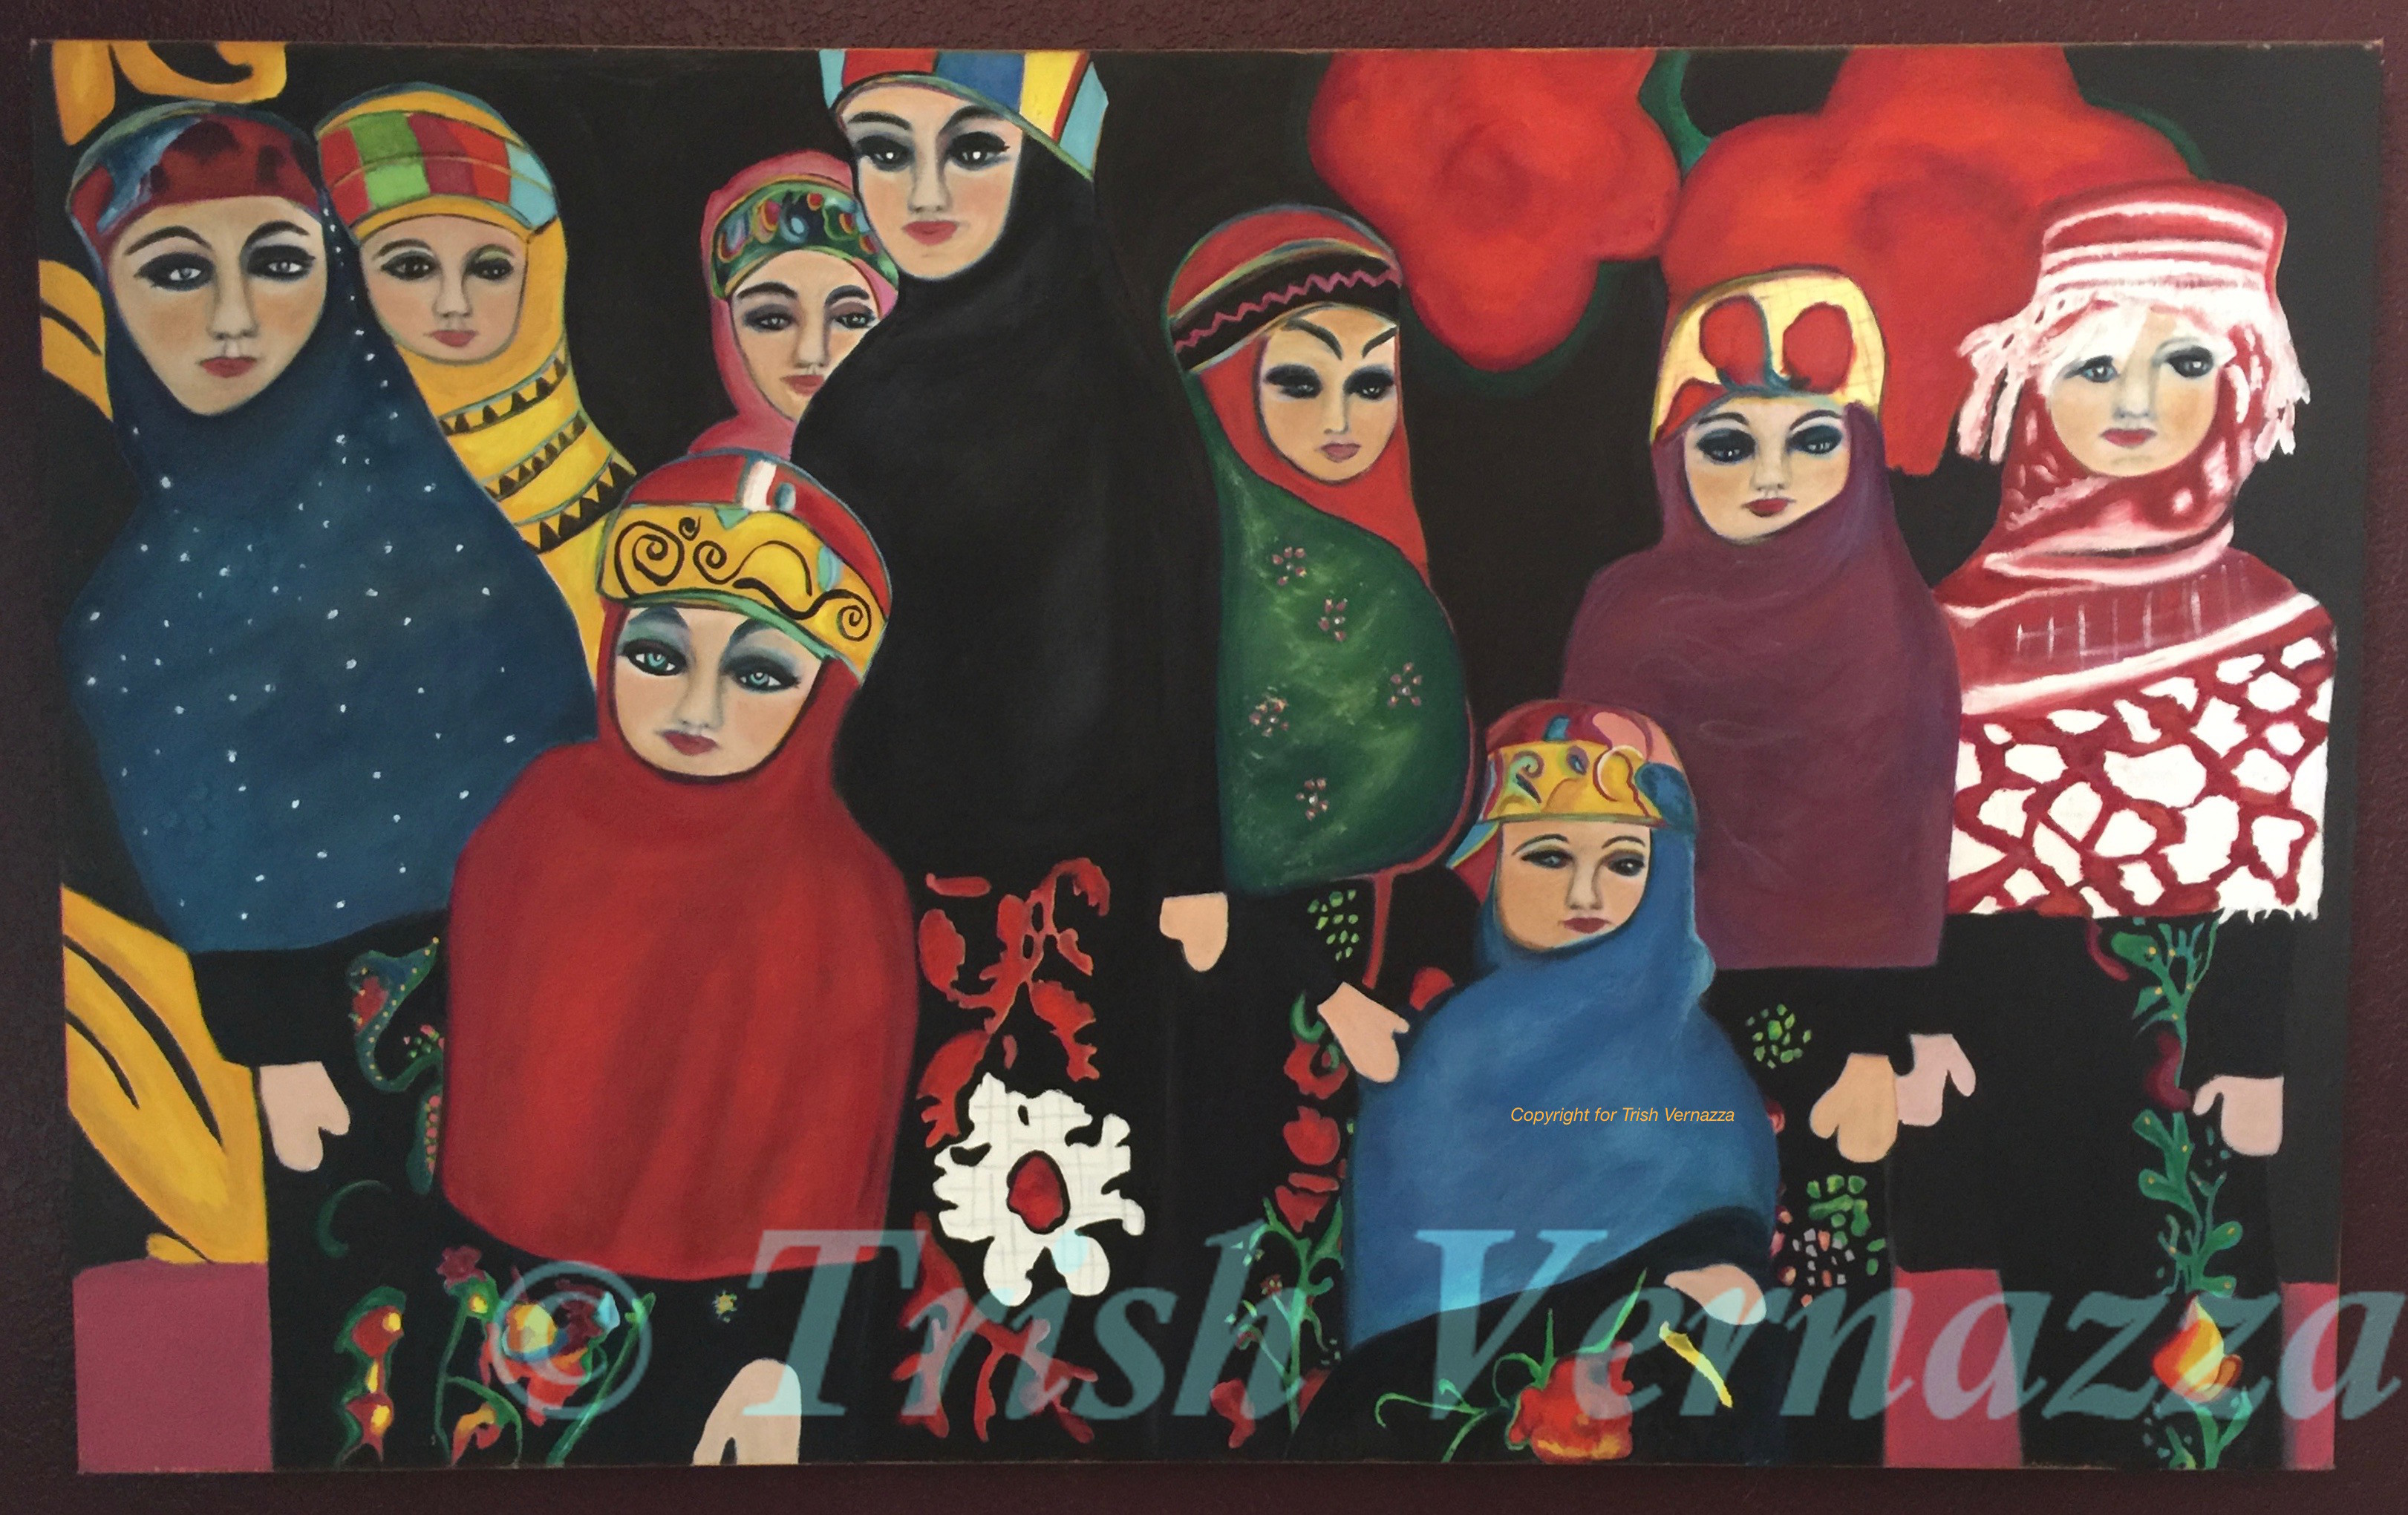 Trish Ethnic Dolls